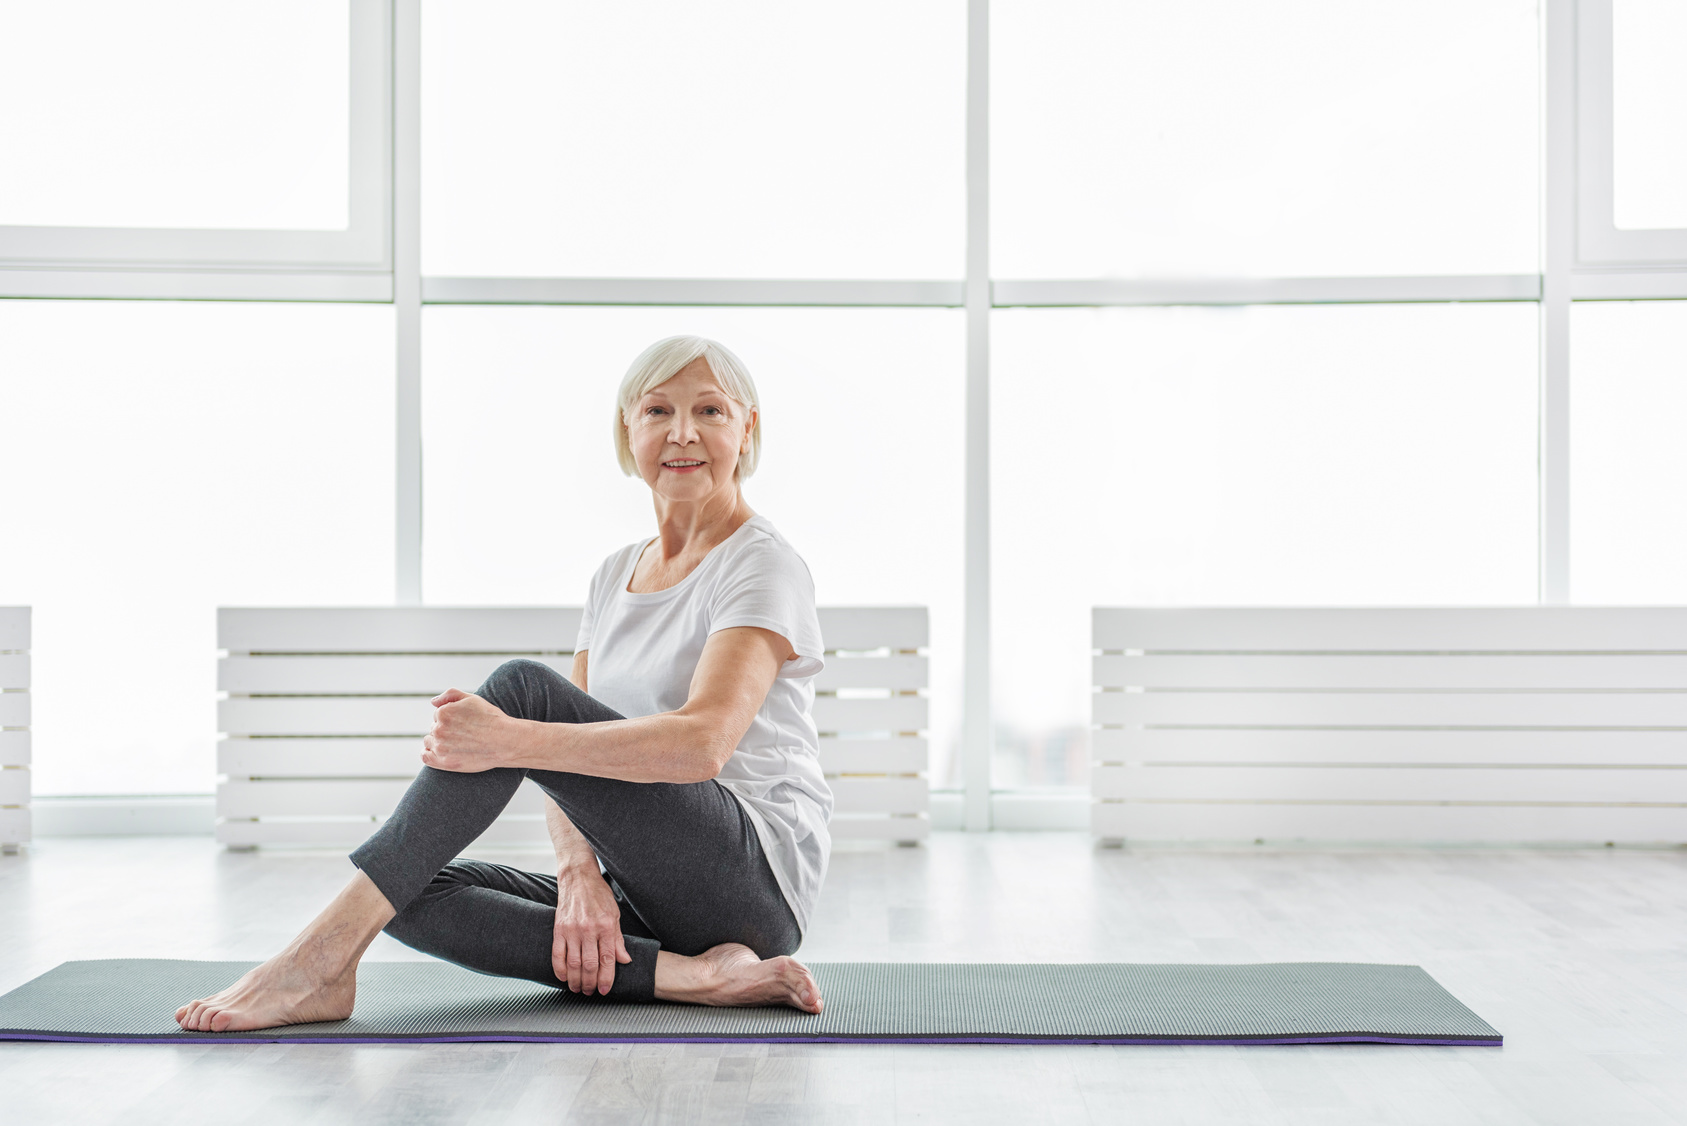 Older woman practicing yoga for health benefits recovering from stroke